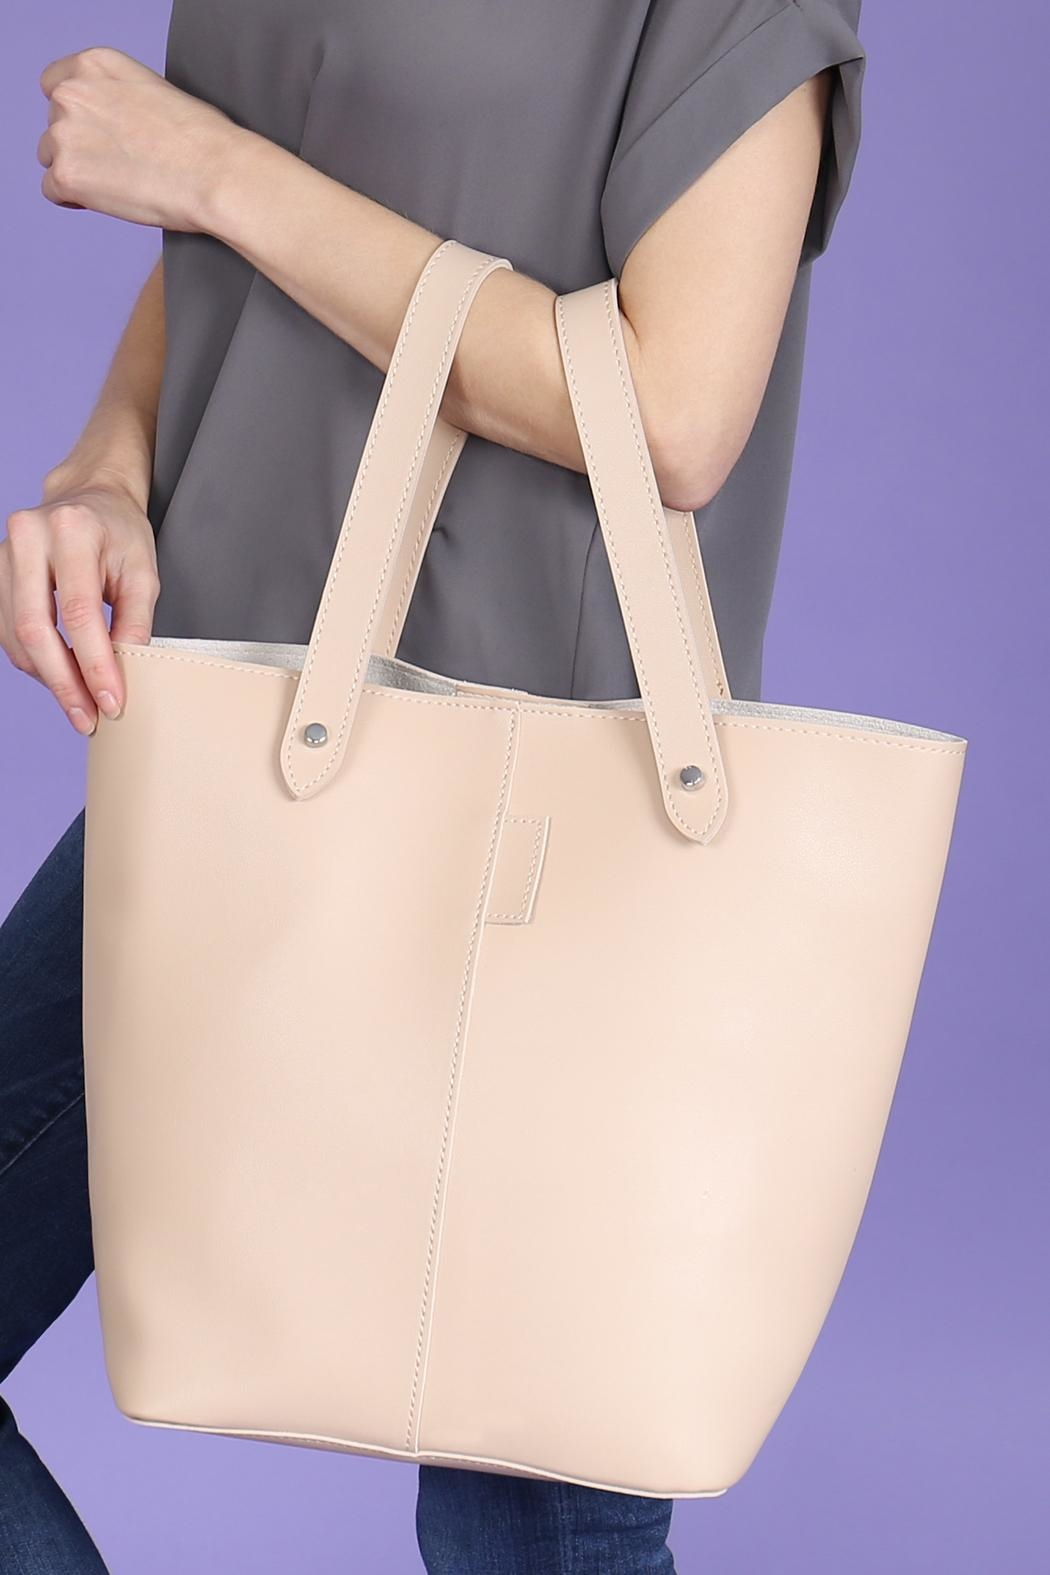 Riah Fashion 2 Way Strap Handle Tote Leather Bag With Pouch Set - Back Cropped Image